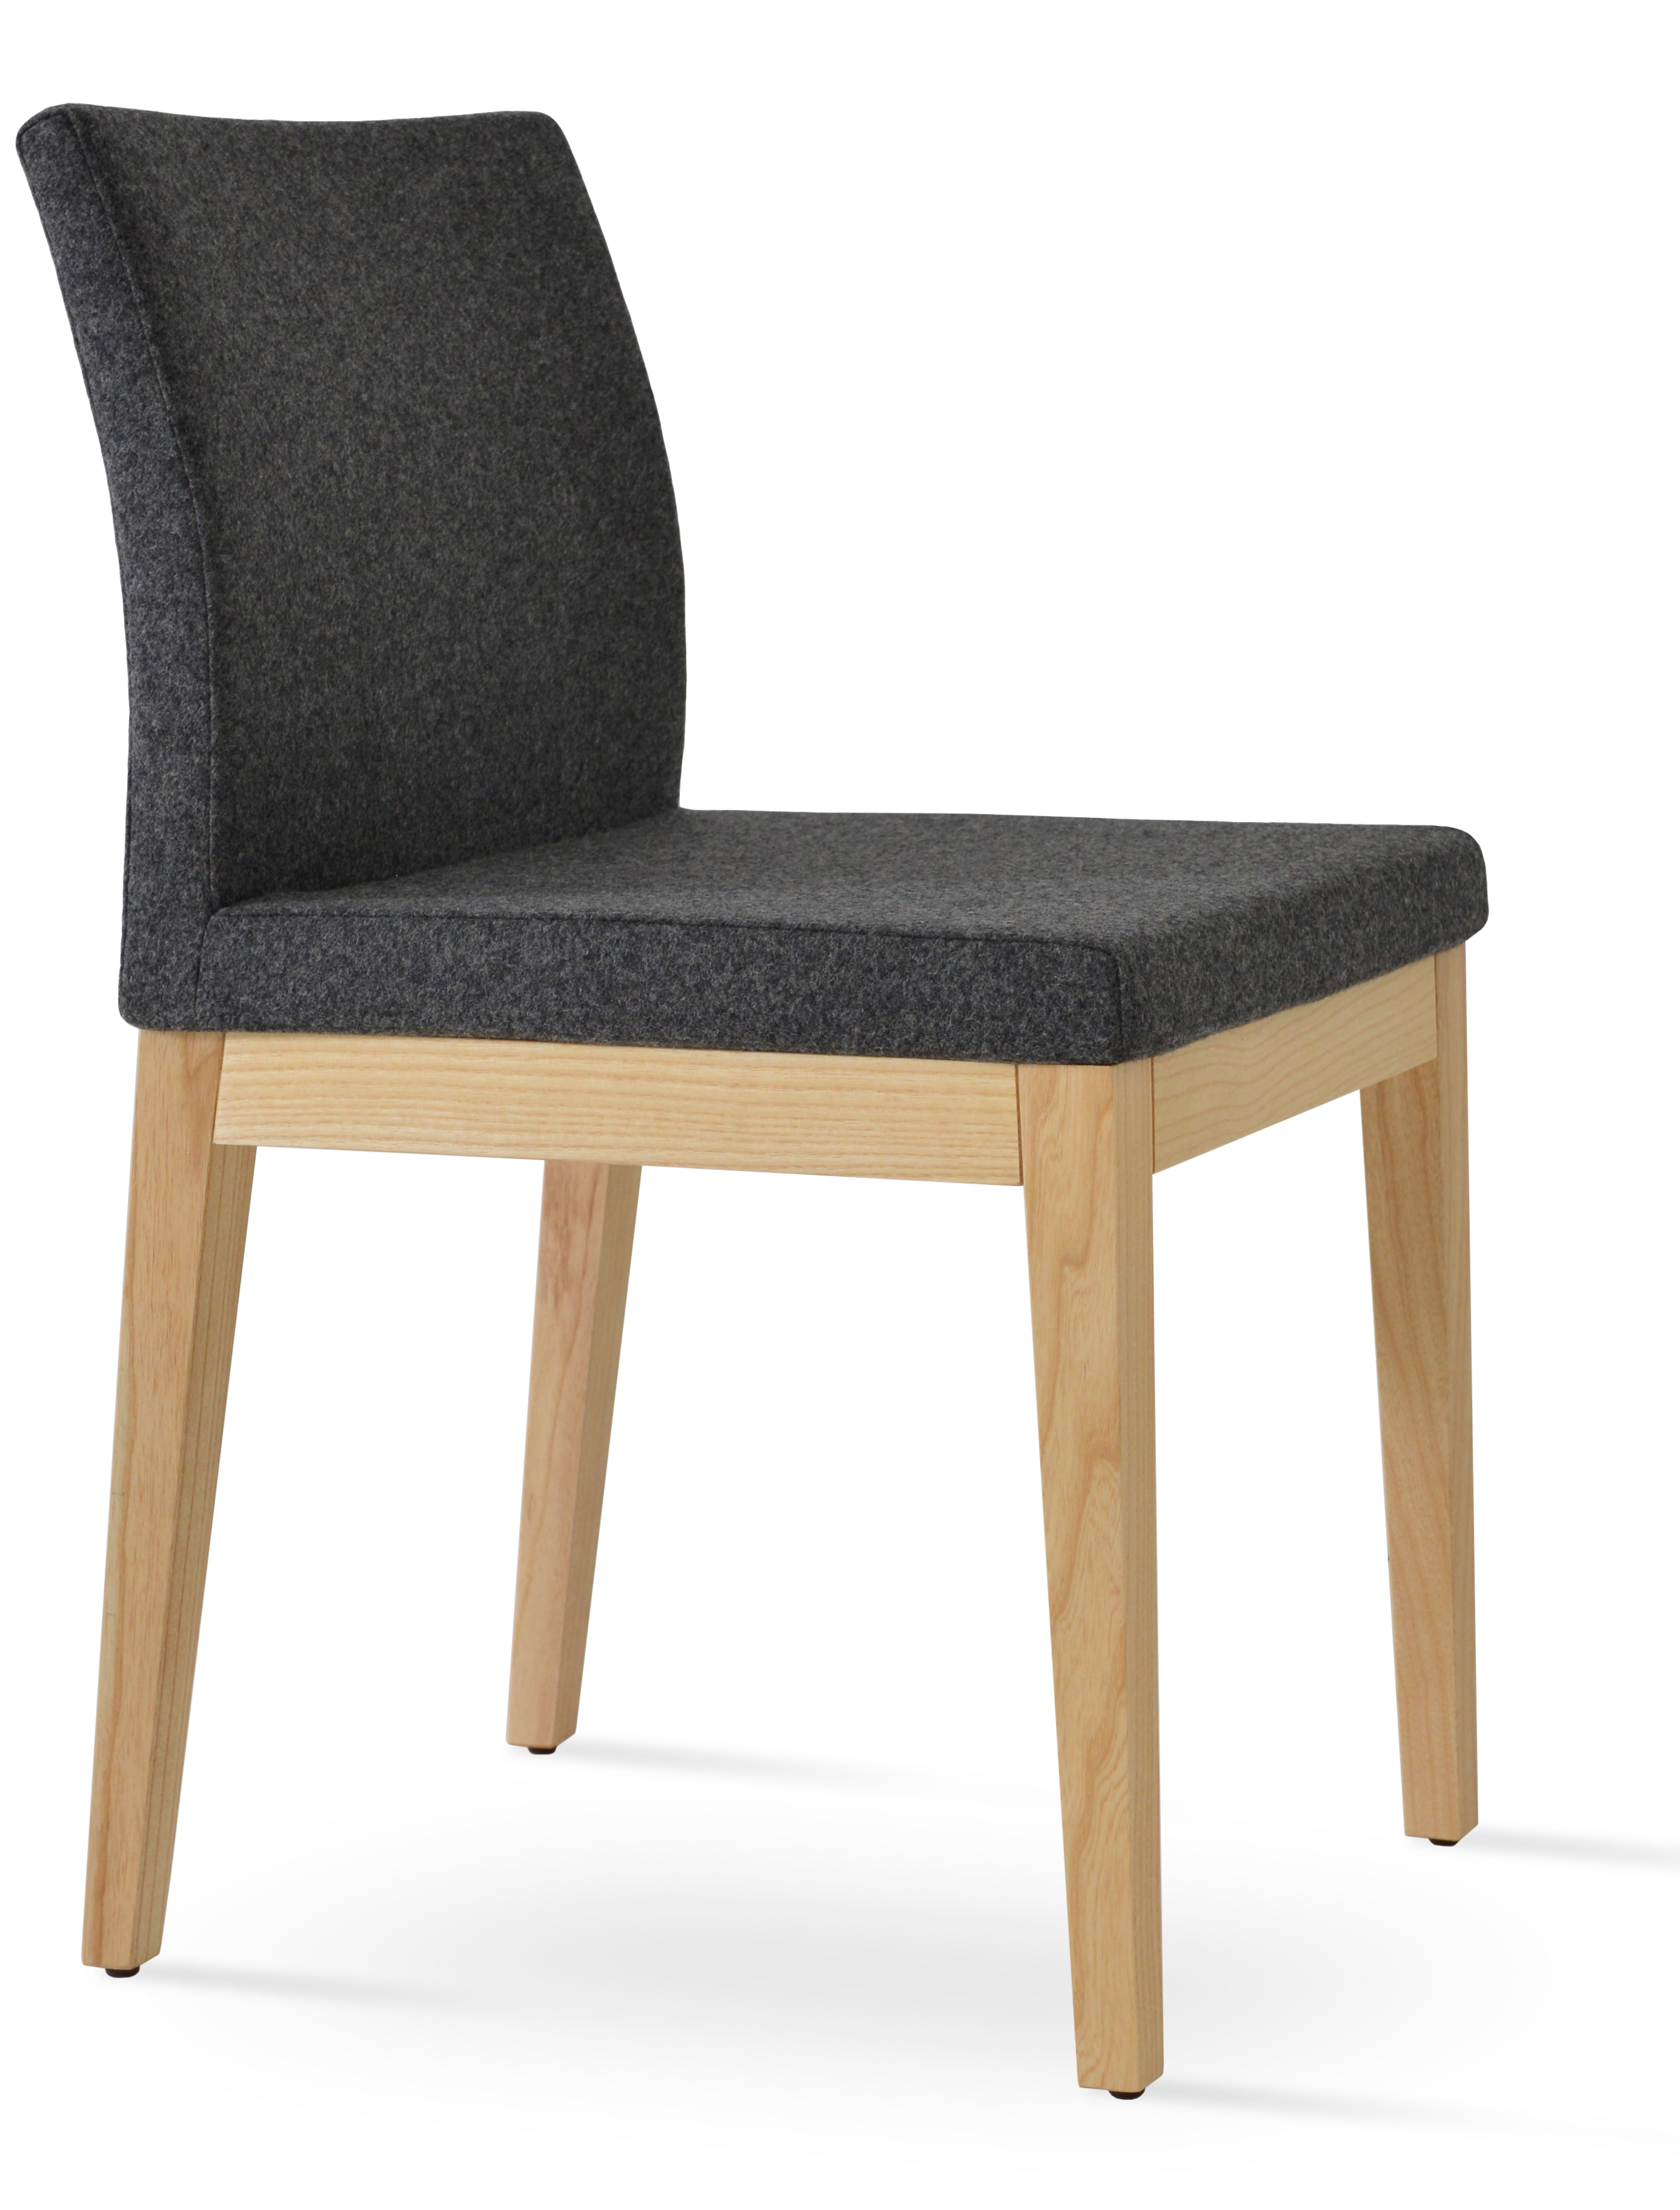 Aria Wood Euroform Contract Furniture